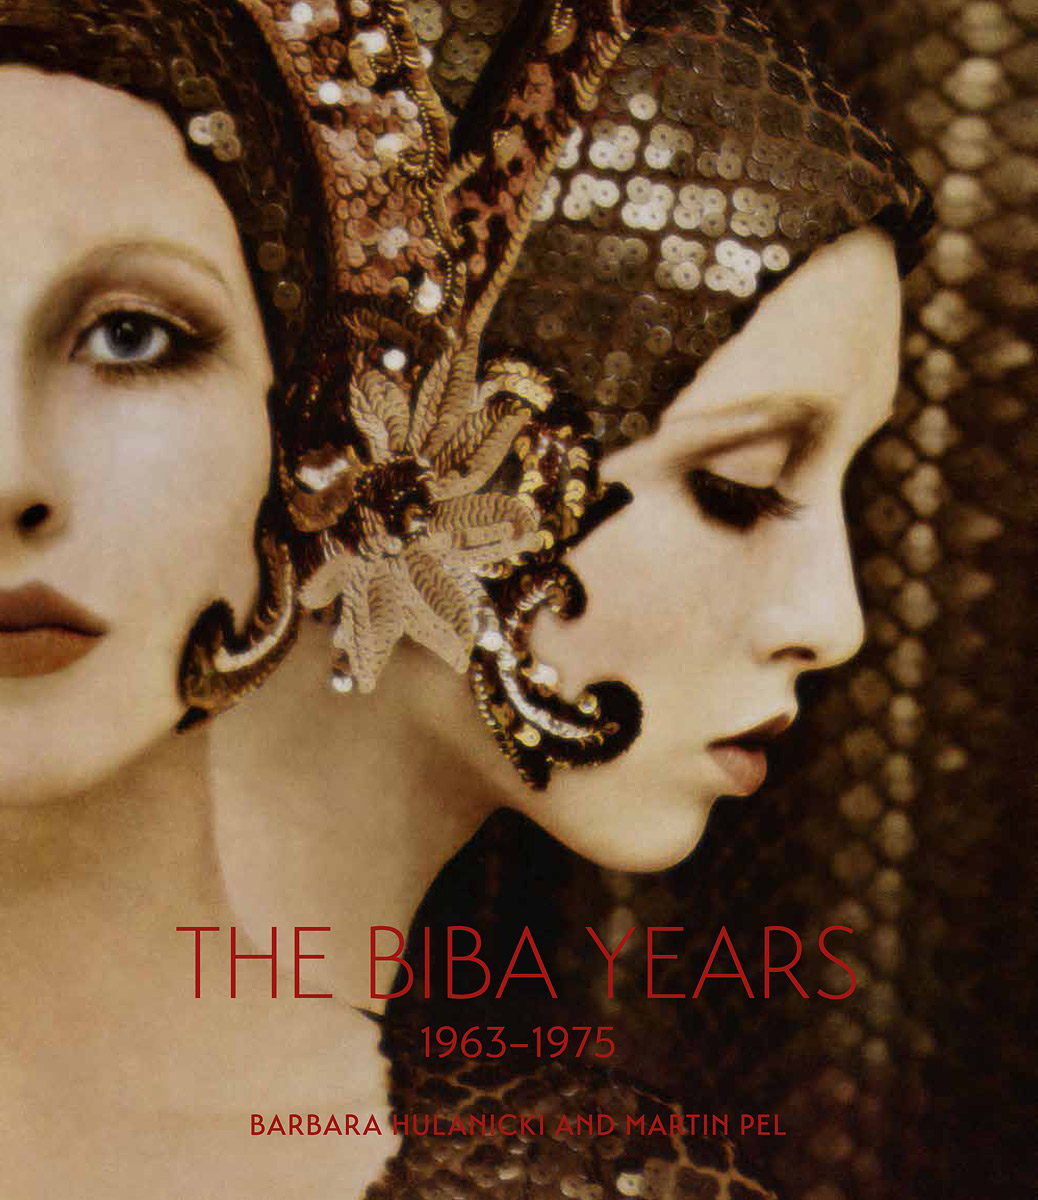 The Biba Years: 1963-1975 fashion a coloring book of designer looks and accessories